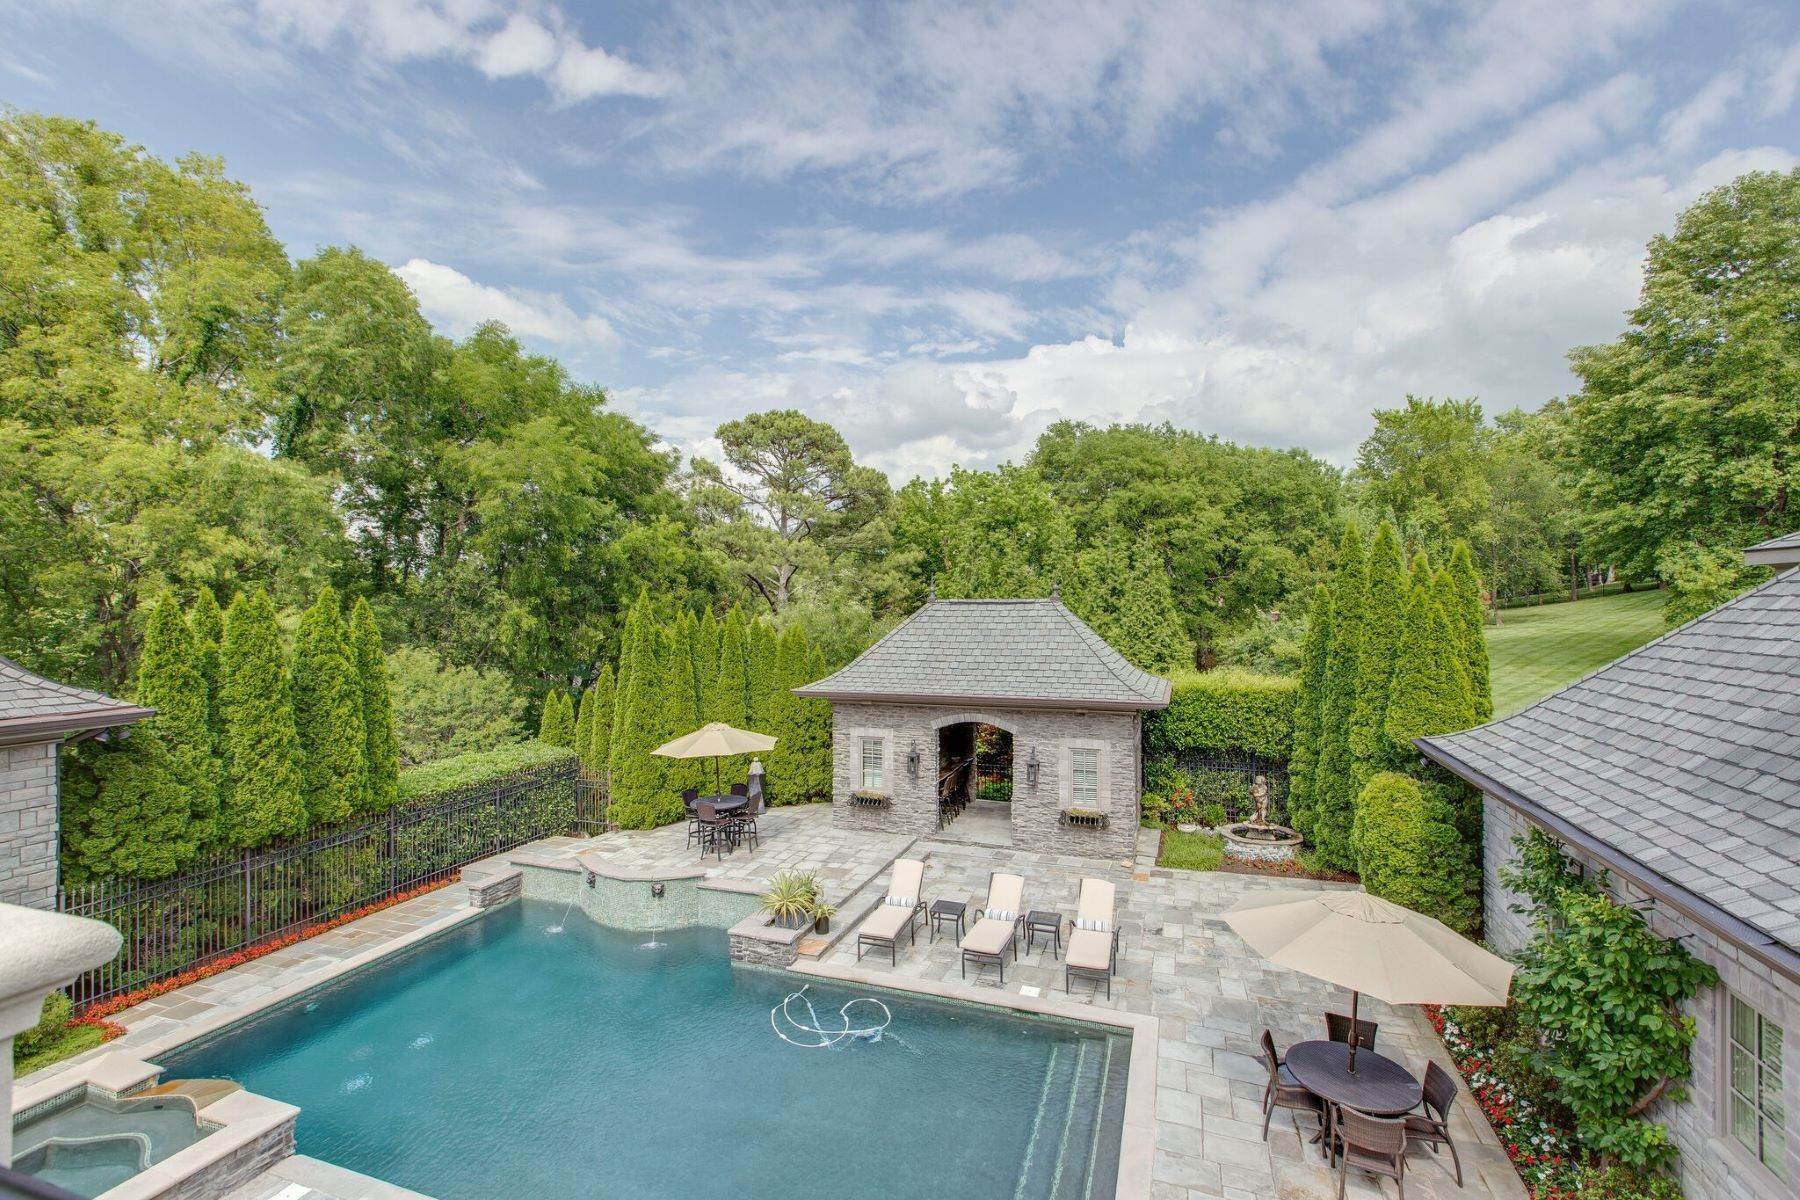 44. Single Family Homes for Sale at 4914 Lealand Ln, Nashville, Tn, 37220 4914 Lealand Ln Nashville, Tennessee 37220 United States